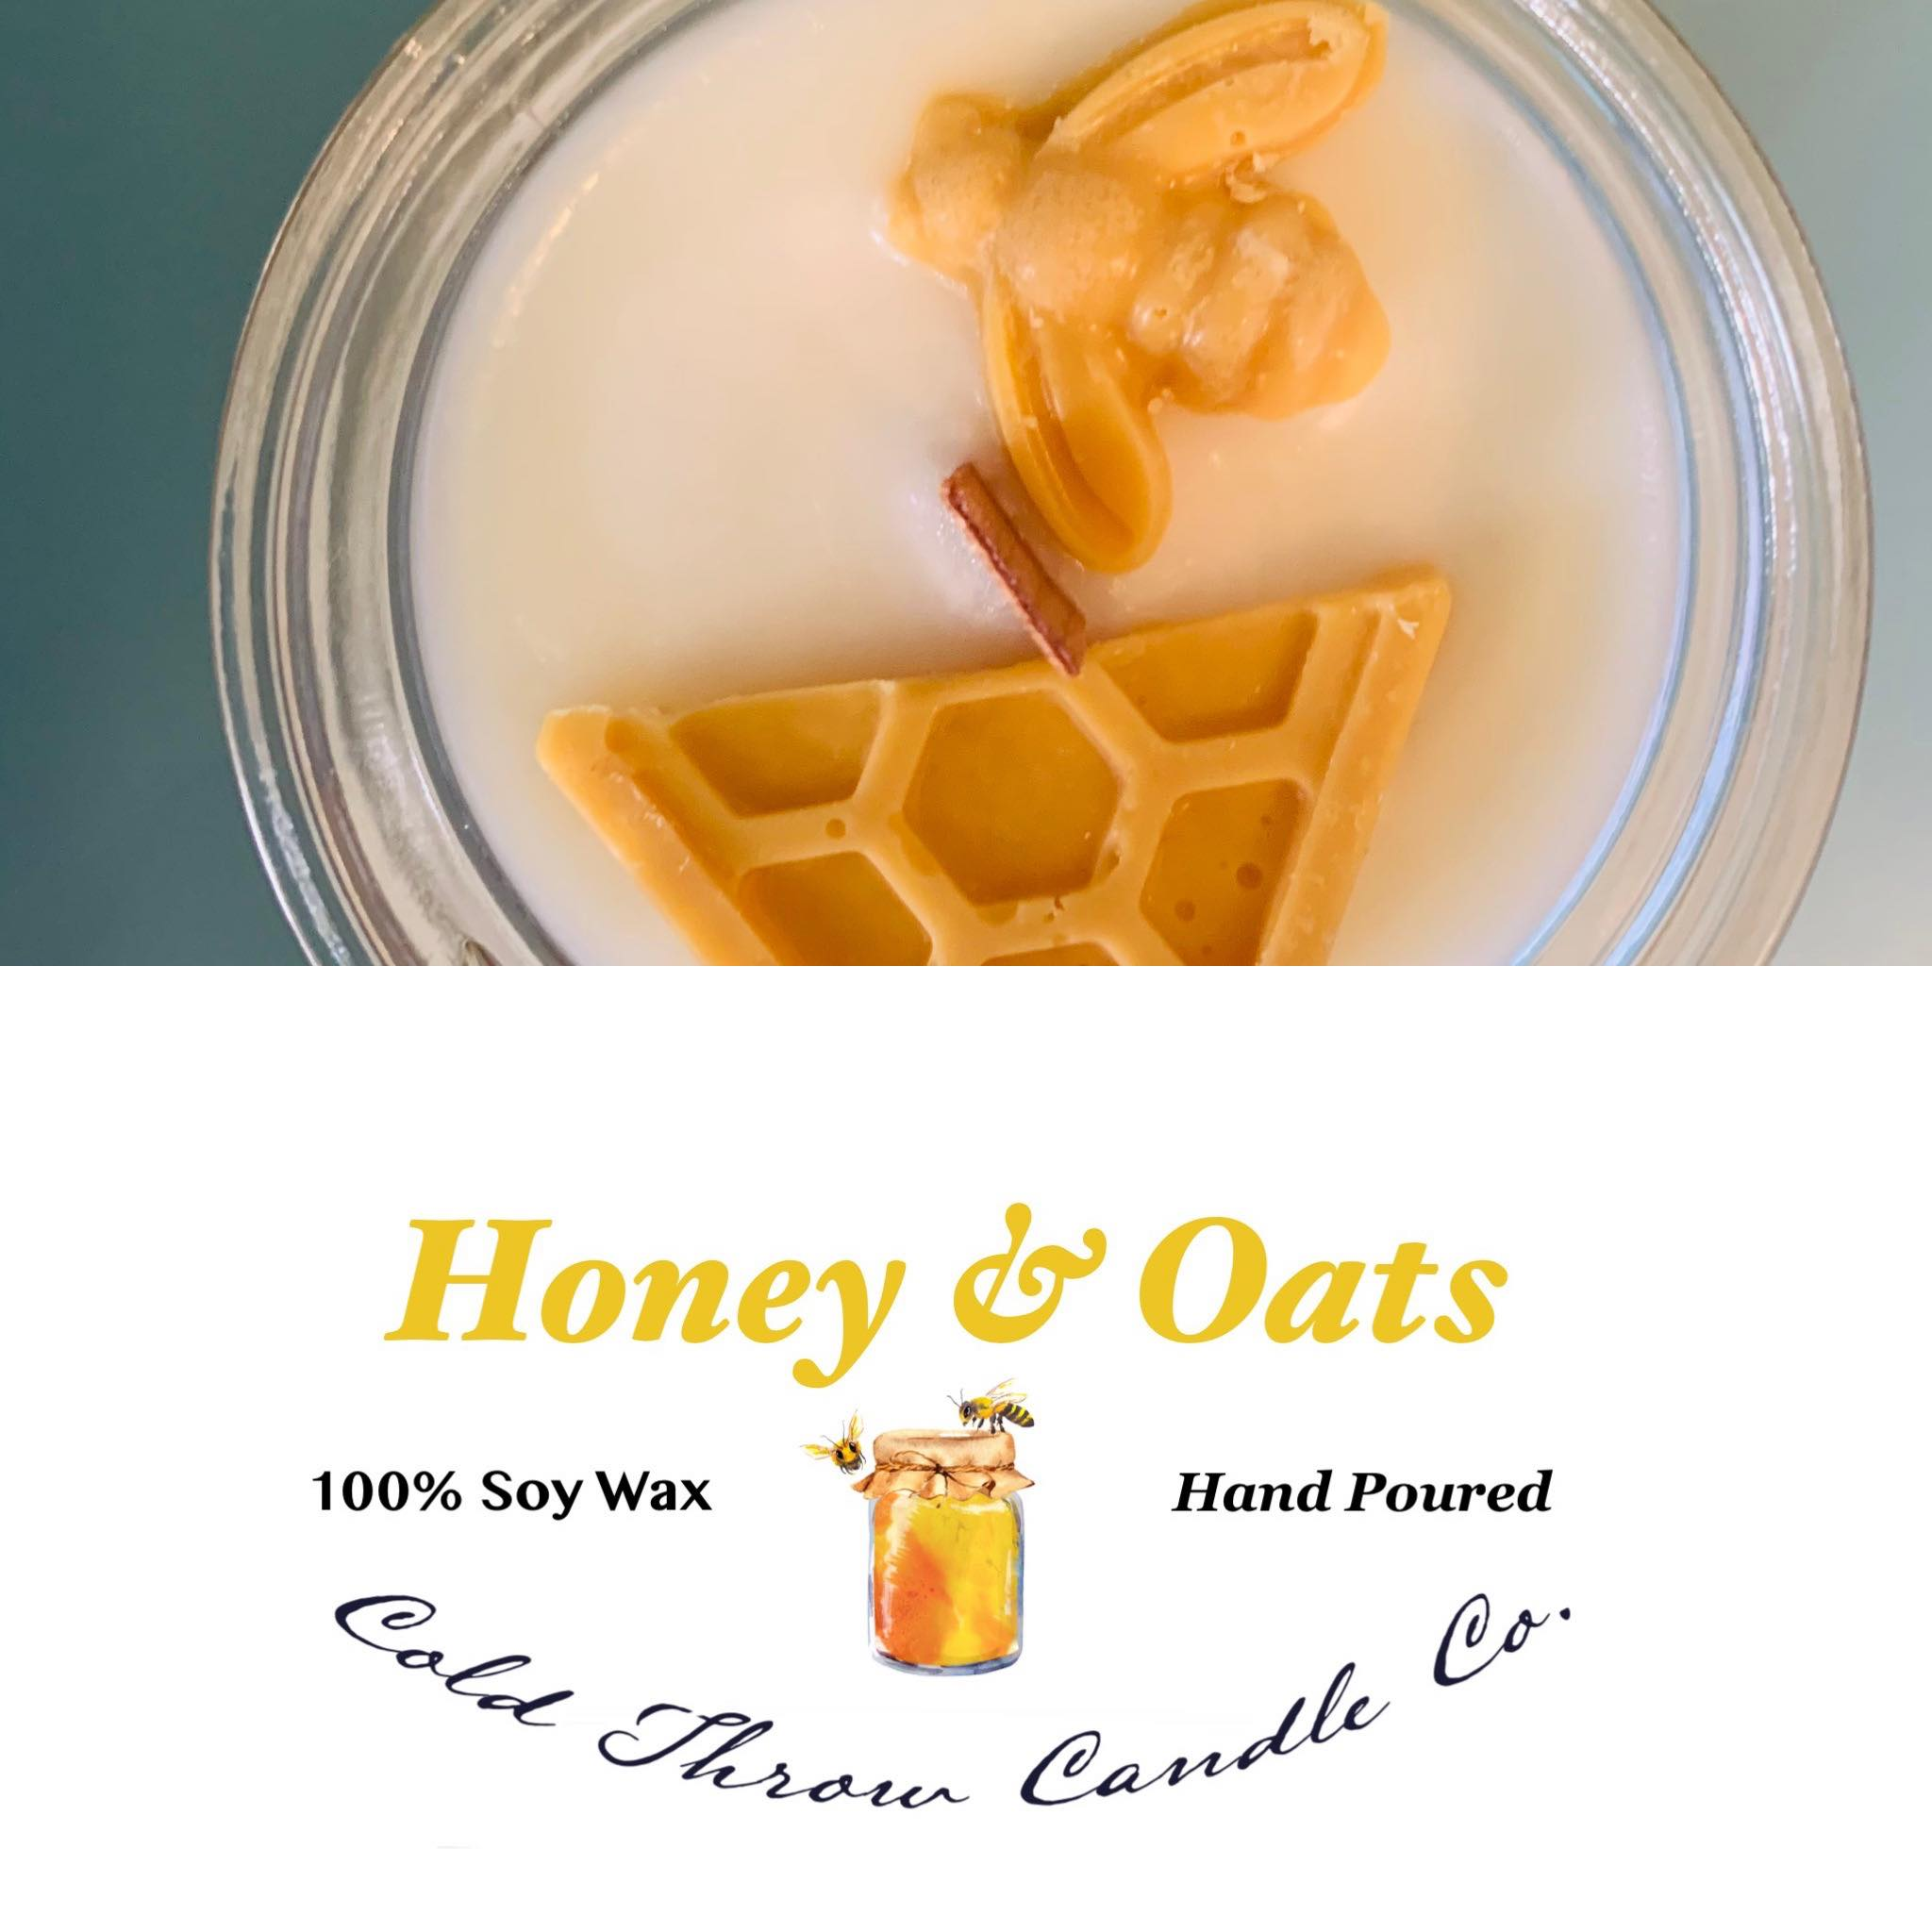 """An inviting blend of vanilla and honey aromas sprinkled with oat notes. This scent will soothe the senses and calm the mind. Best enjoyed beside a roaring fire while reading or next to you as you soak in a bath full of bubbles. It's a """"me time""""candle!"""